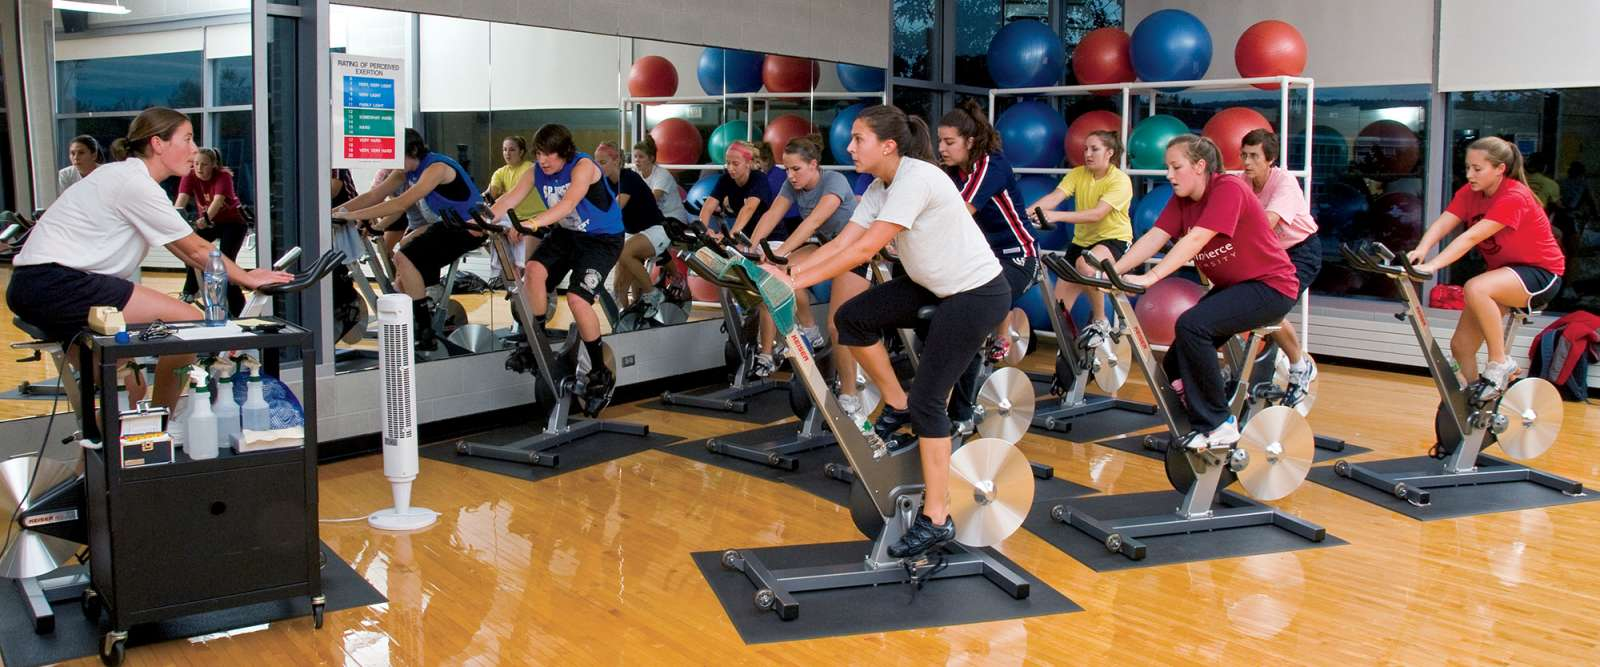 Recreational Sports: Spin Class